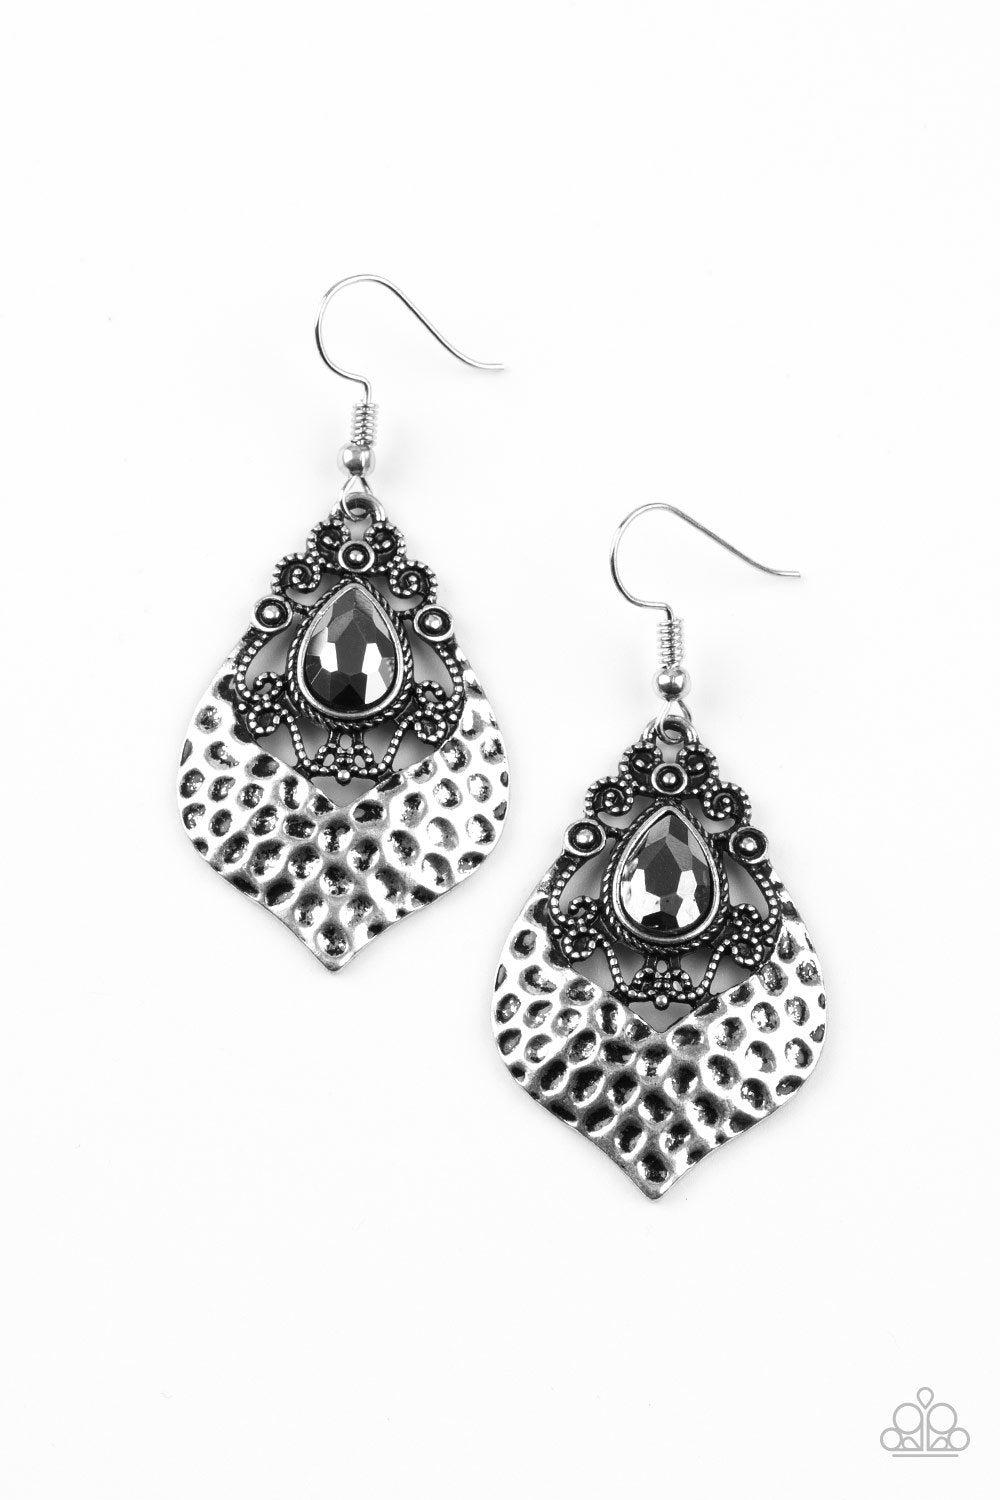 Paparazzi Accessories ~ Royal Rebel - Silver